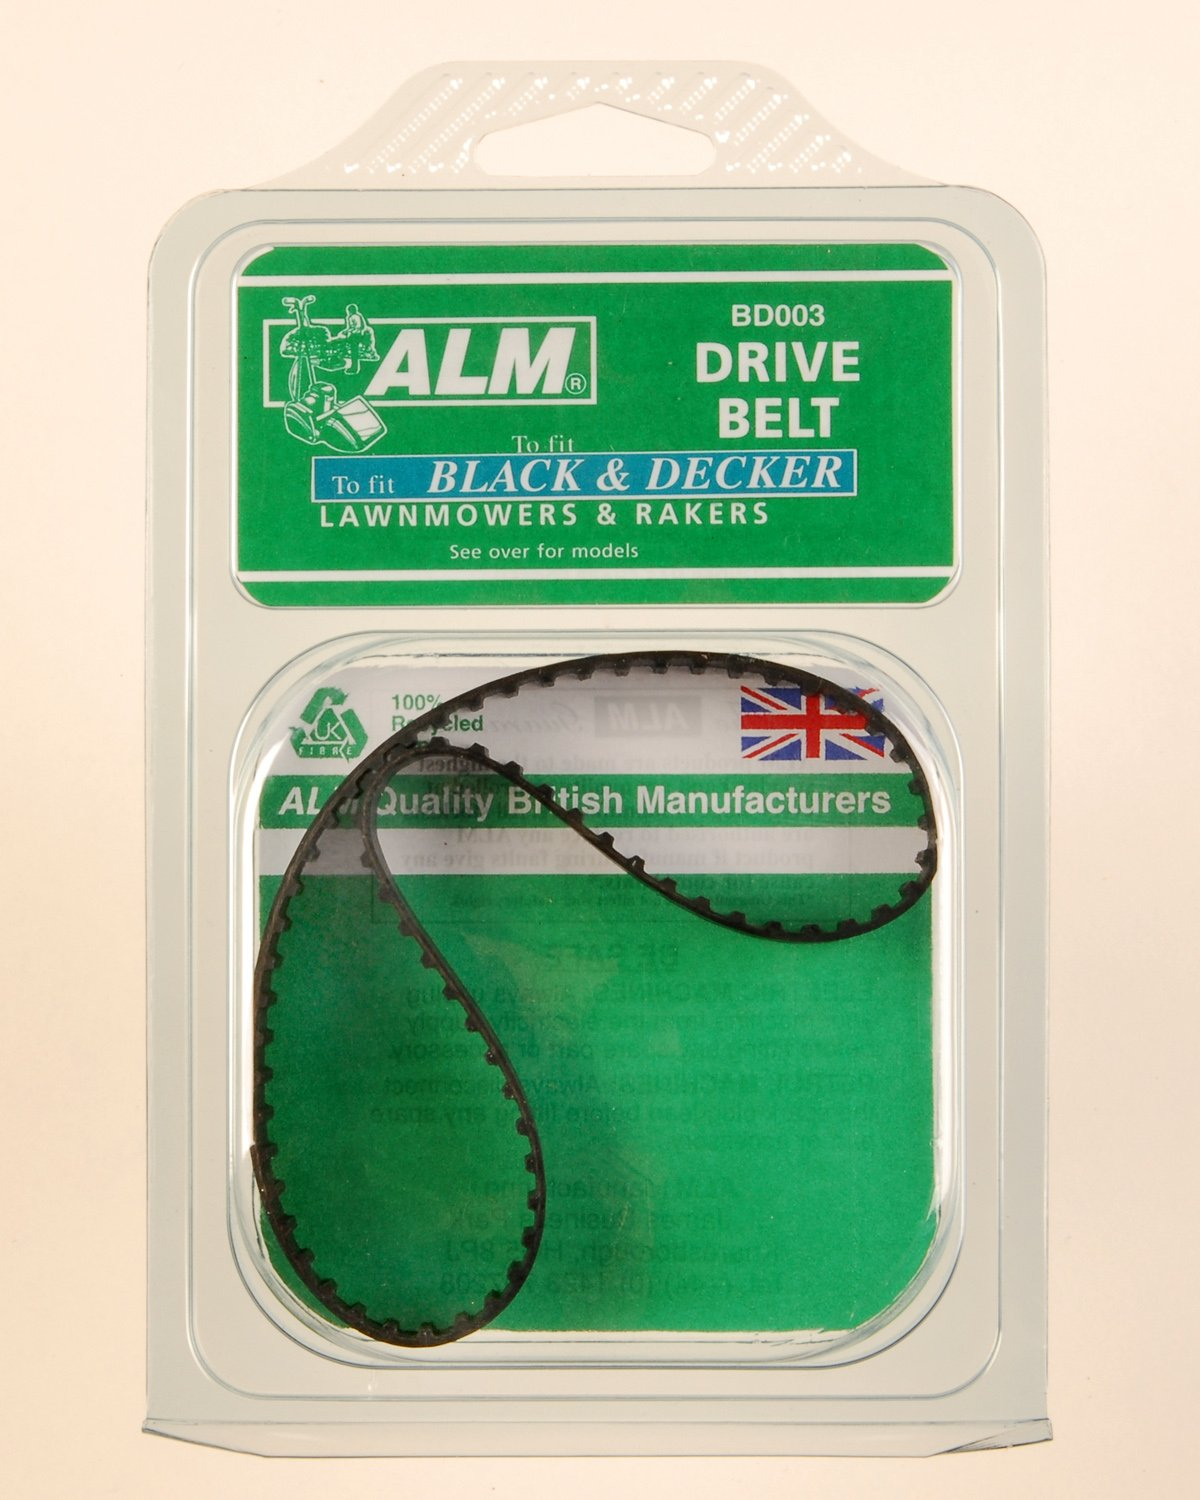 ALM Black & Decker Drive Belt for Lawnmower & Lawnrakes BD003 (See description for models)